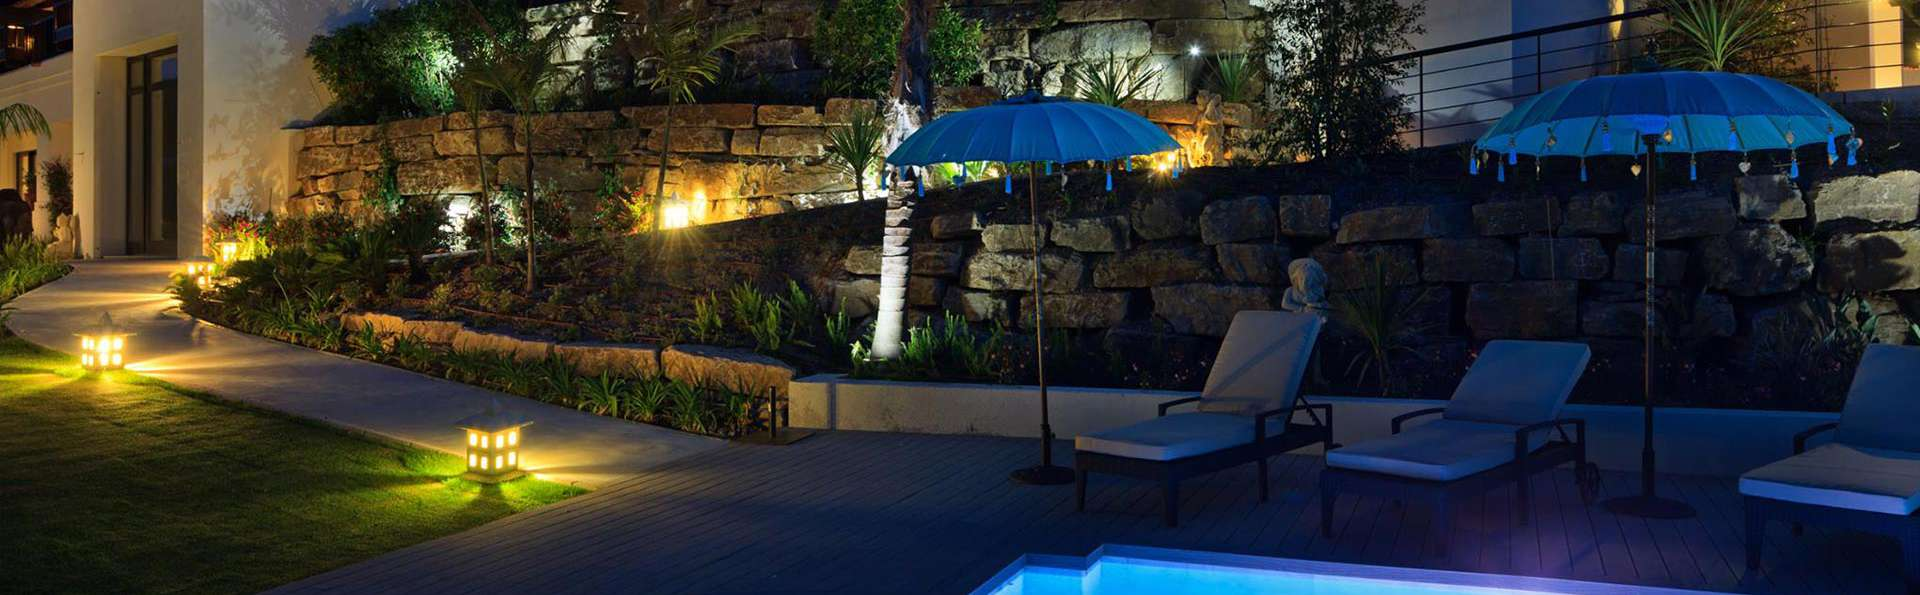 Shanti Som Wellbeing Retreat (Adults Only) - edit_front_night.jpg